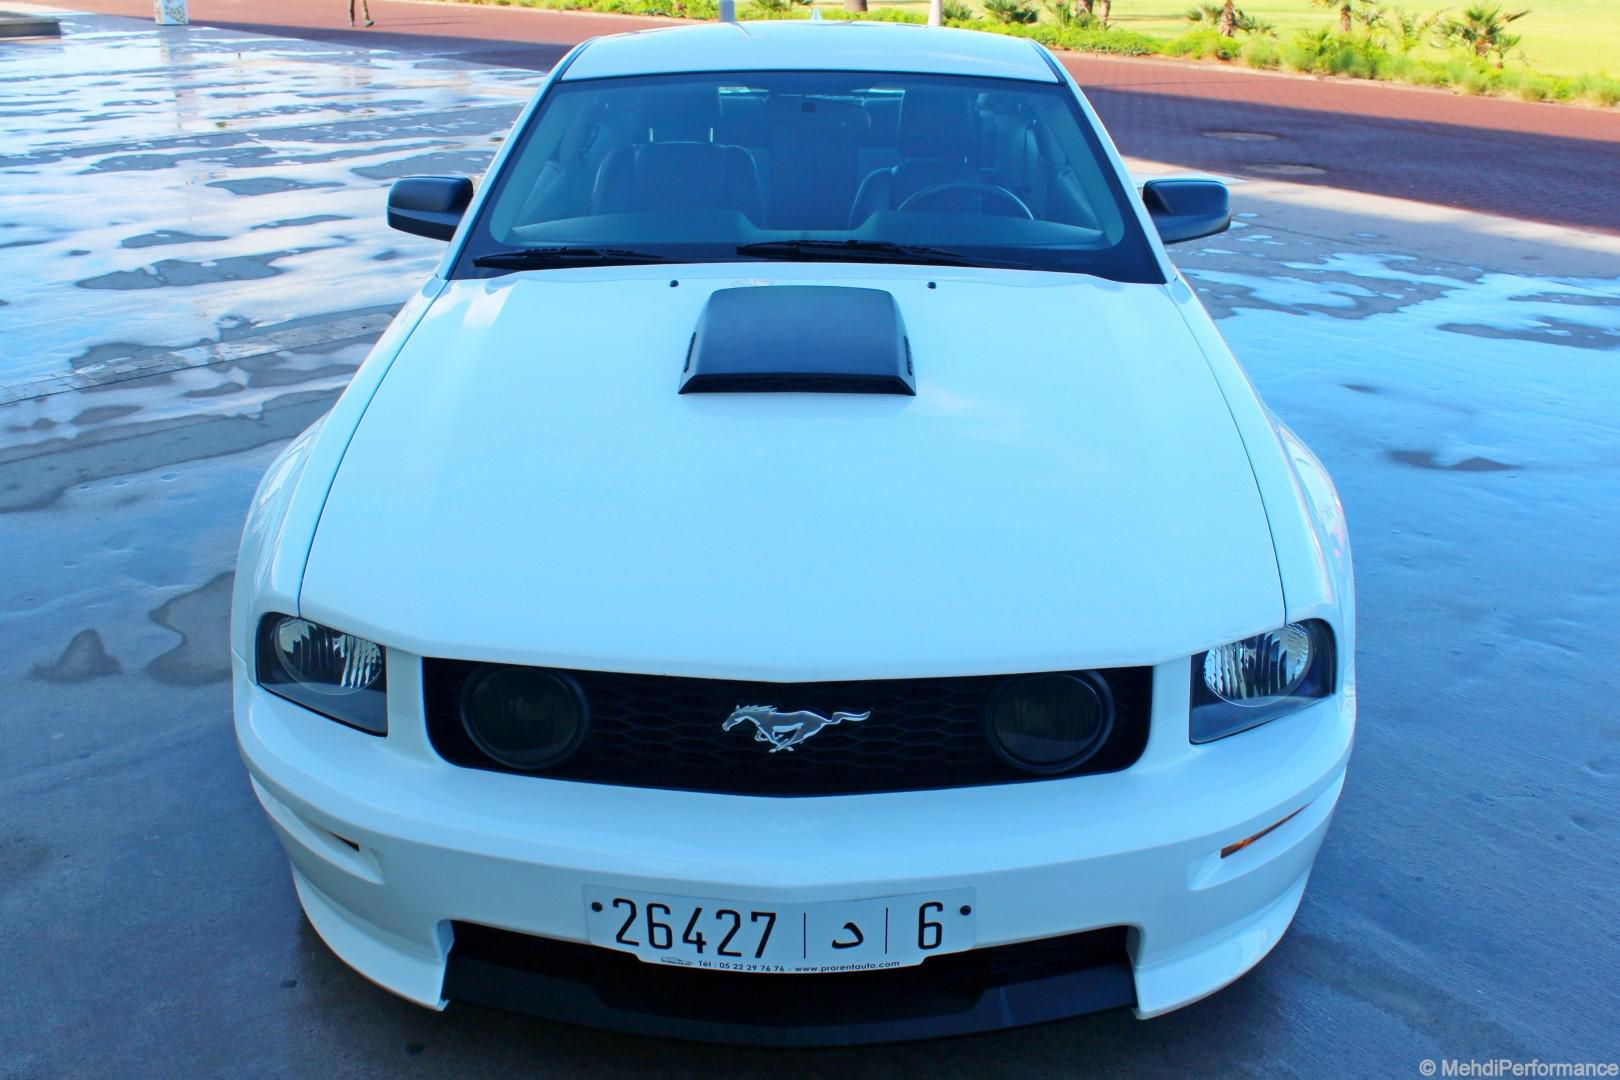 serie-speciale-au-maroc-ford-mustang-gt-v8-4-6l-california-special-manuelle-458-28.jpg